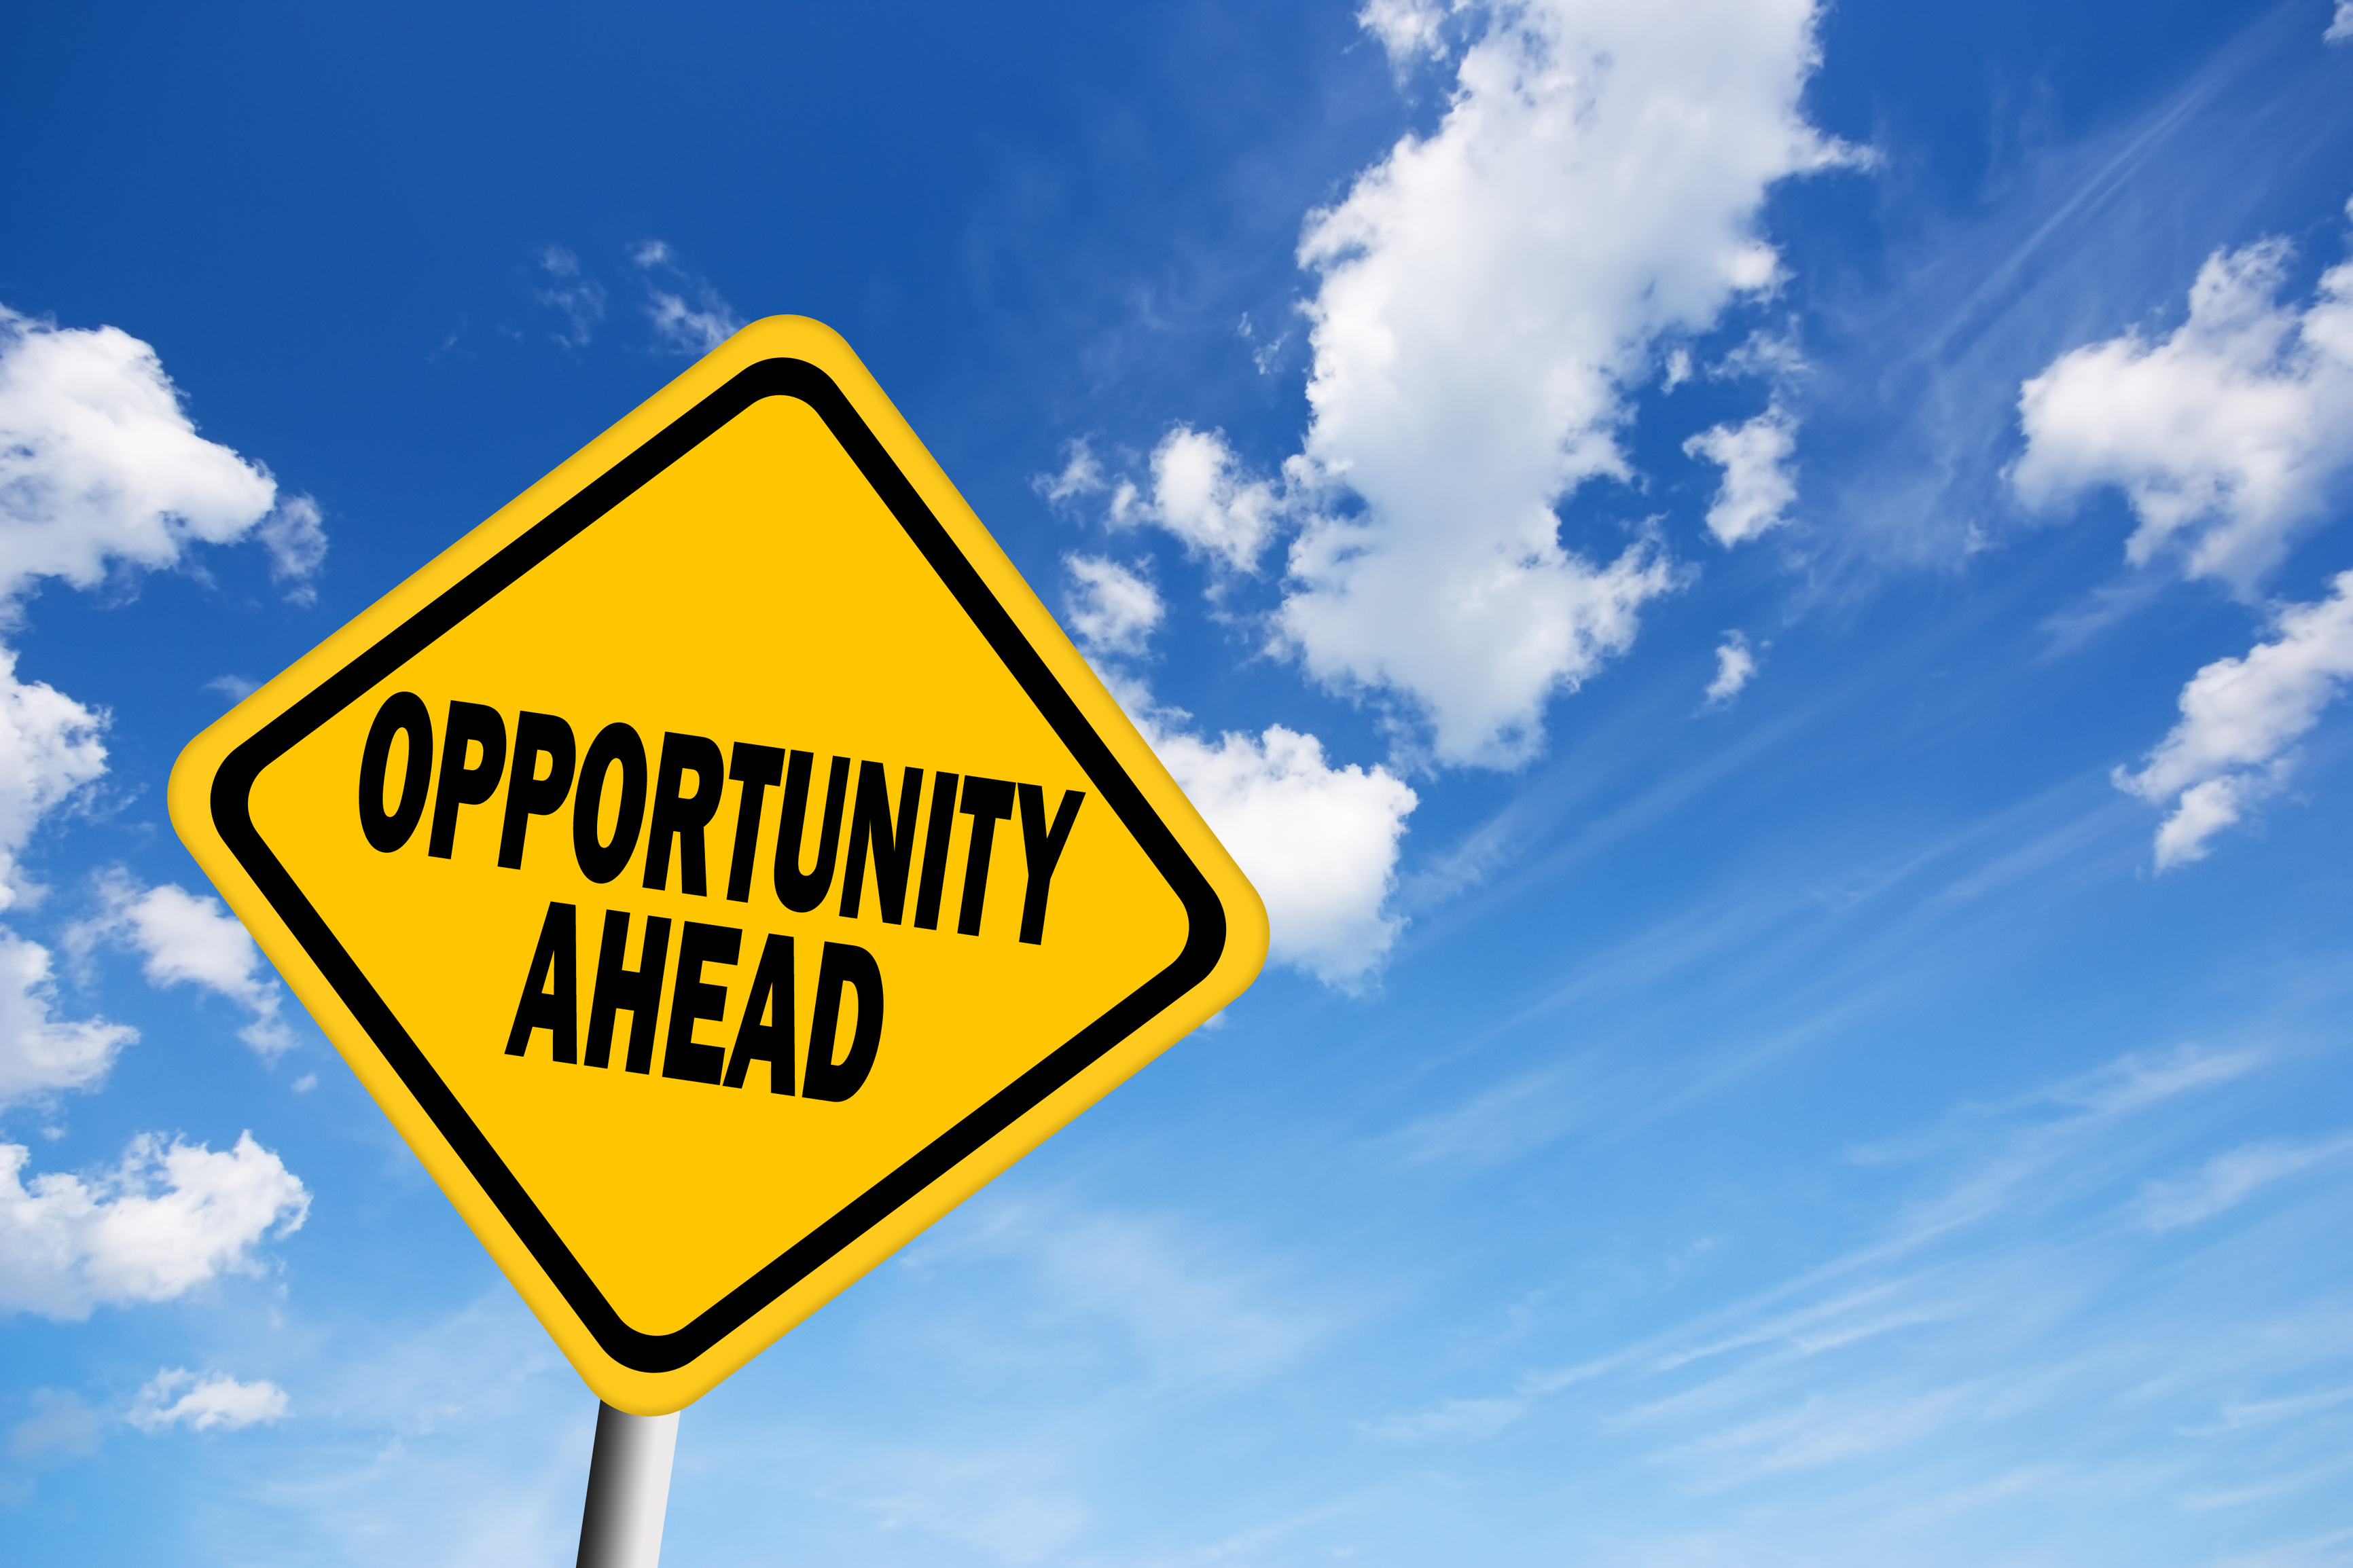 image showing opportunity ahead sign representing photo booth franchise opportunity